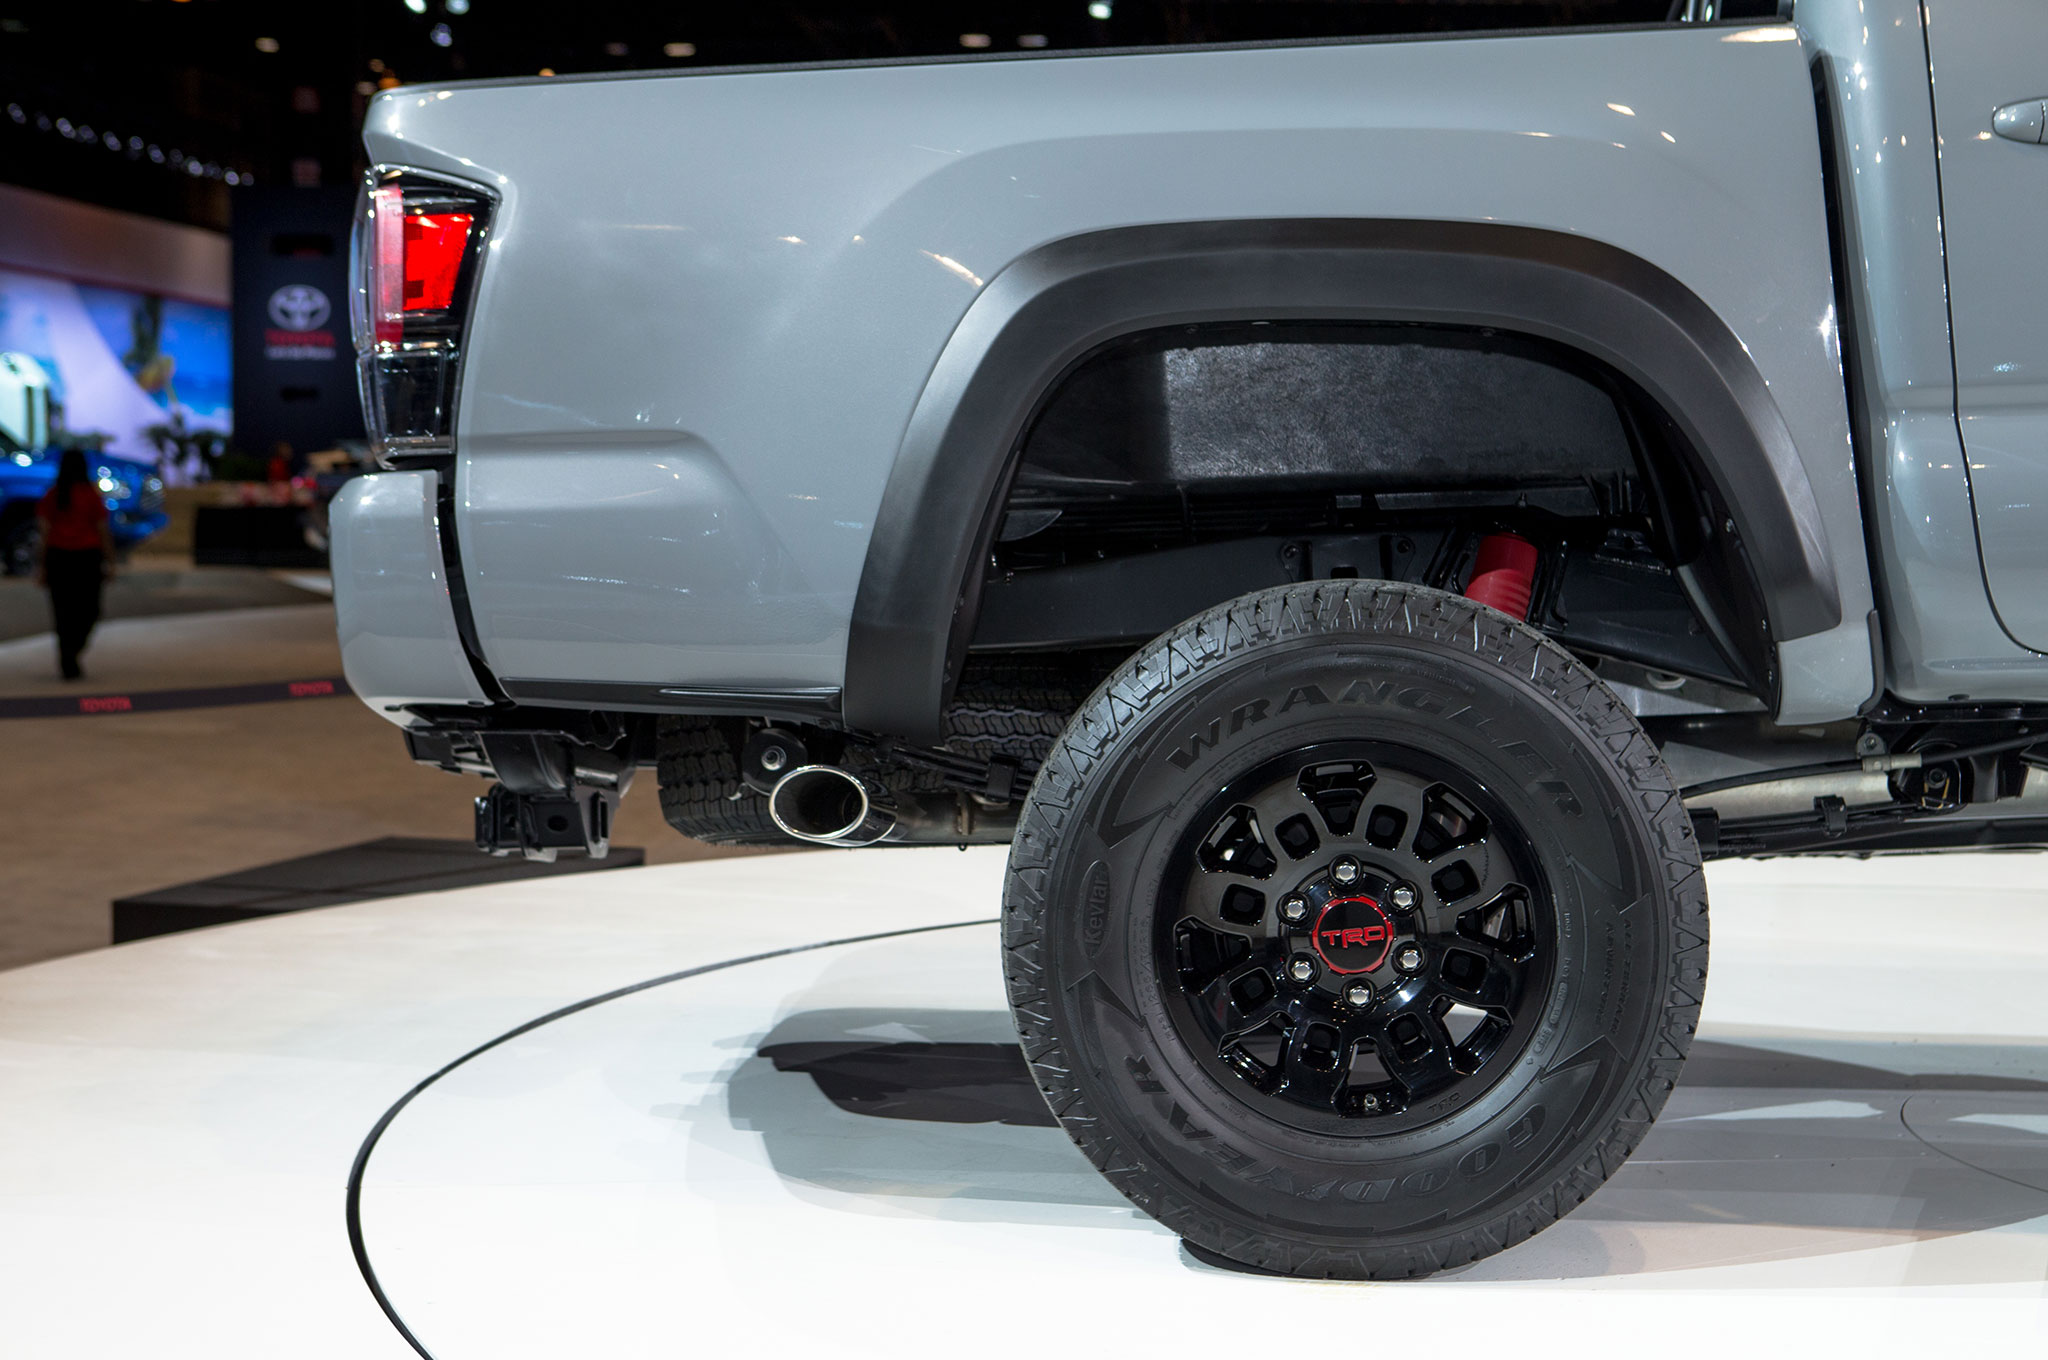 2017 Toyota Tacoma Trd Pro Bed And Wheel